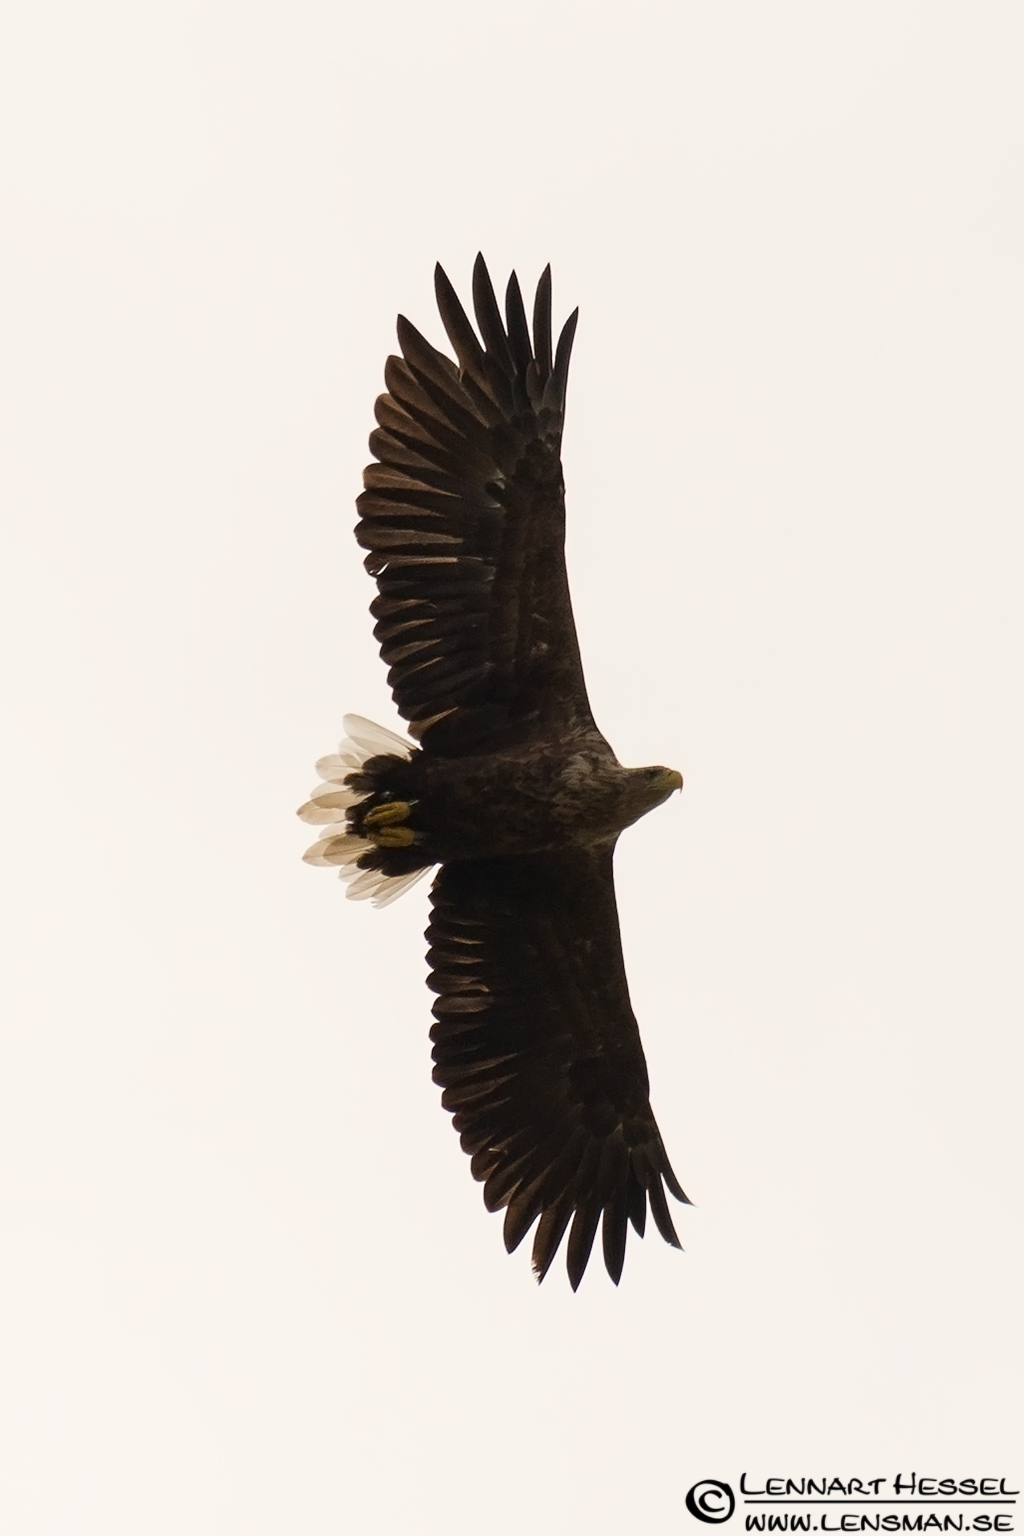 White-tailed Eagle, predatory eagle